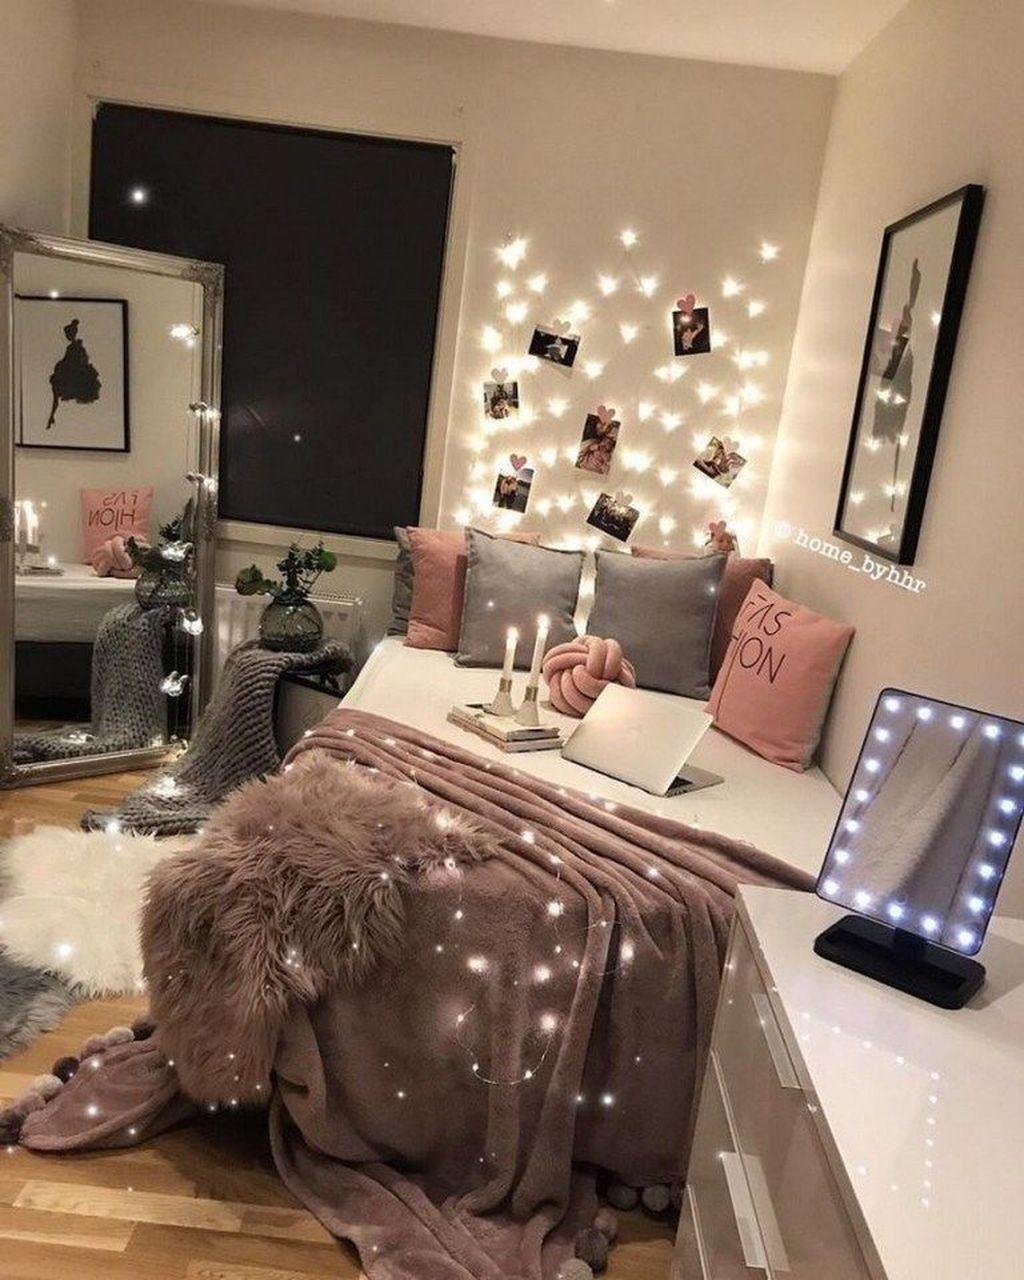 The Best DIY Bedroom Decor Ideas You Have To Try 26